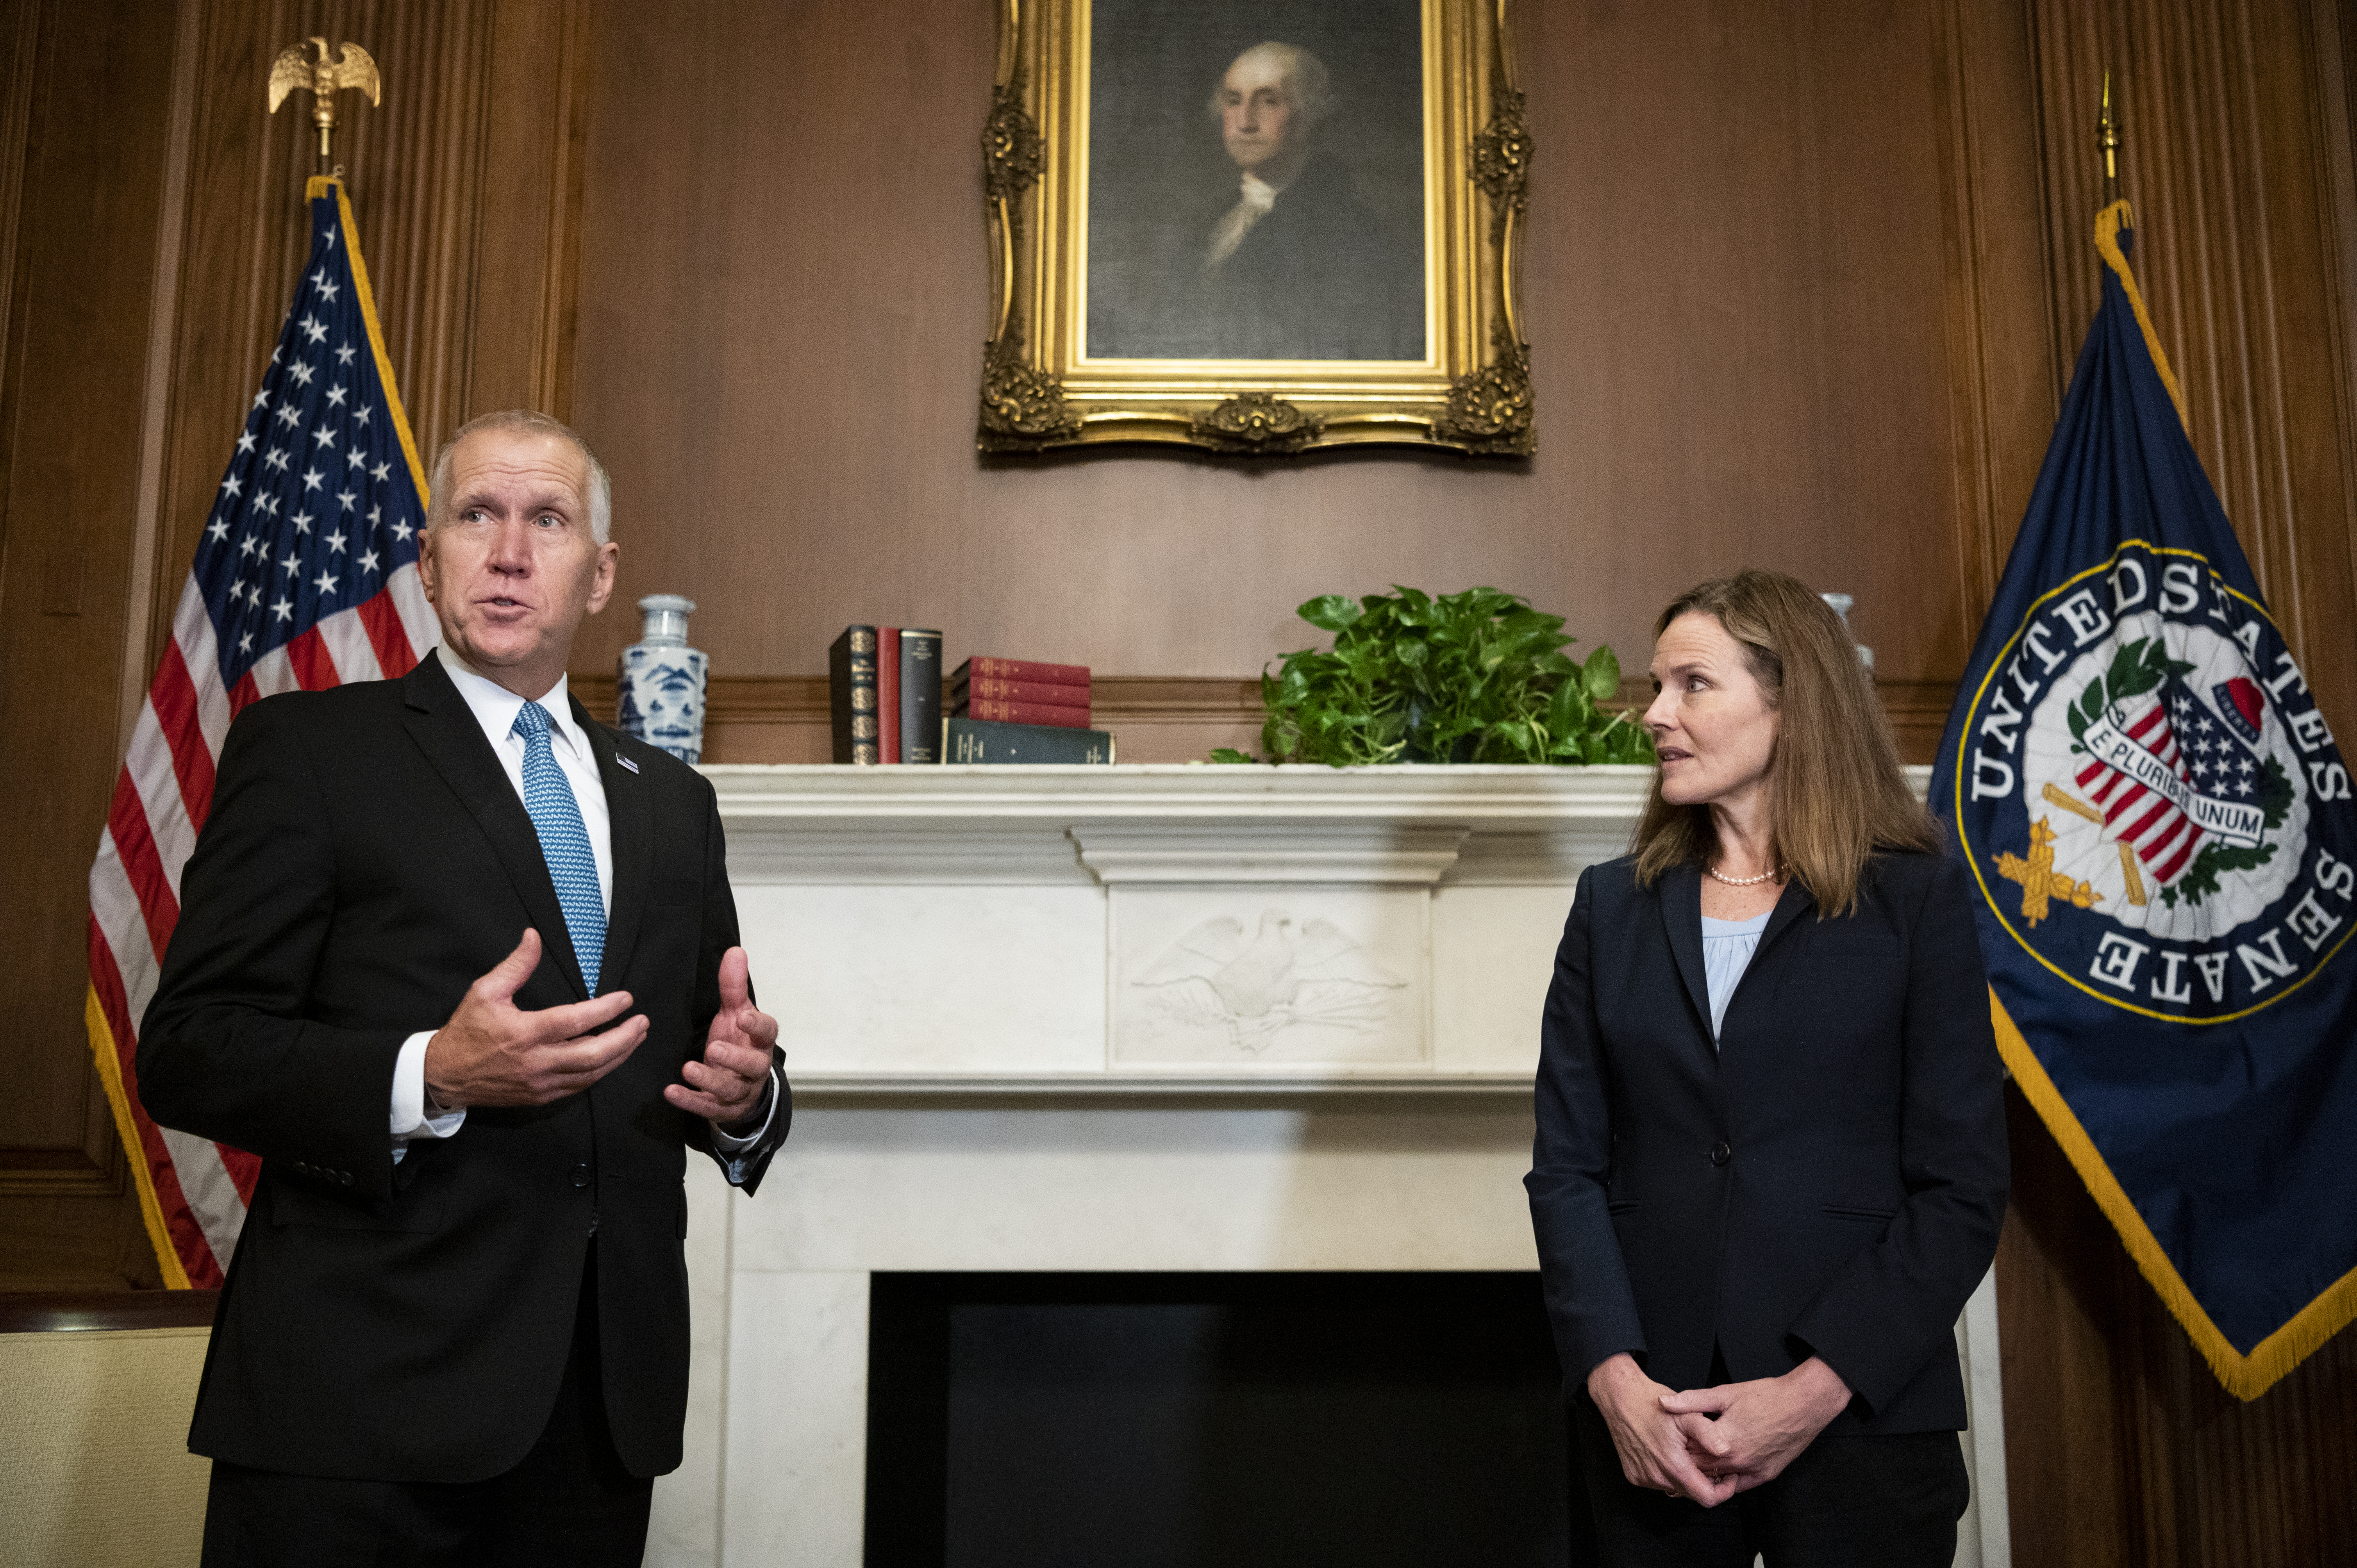 Sen. Thom Tillis, R-N.C., meets with Judge Amy Coney Barrett, President Donald Trump's nominee to the Supreme Court at the U.S. Capitol, Sept. 30, 2020, in Washington.